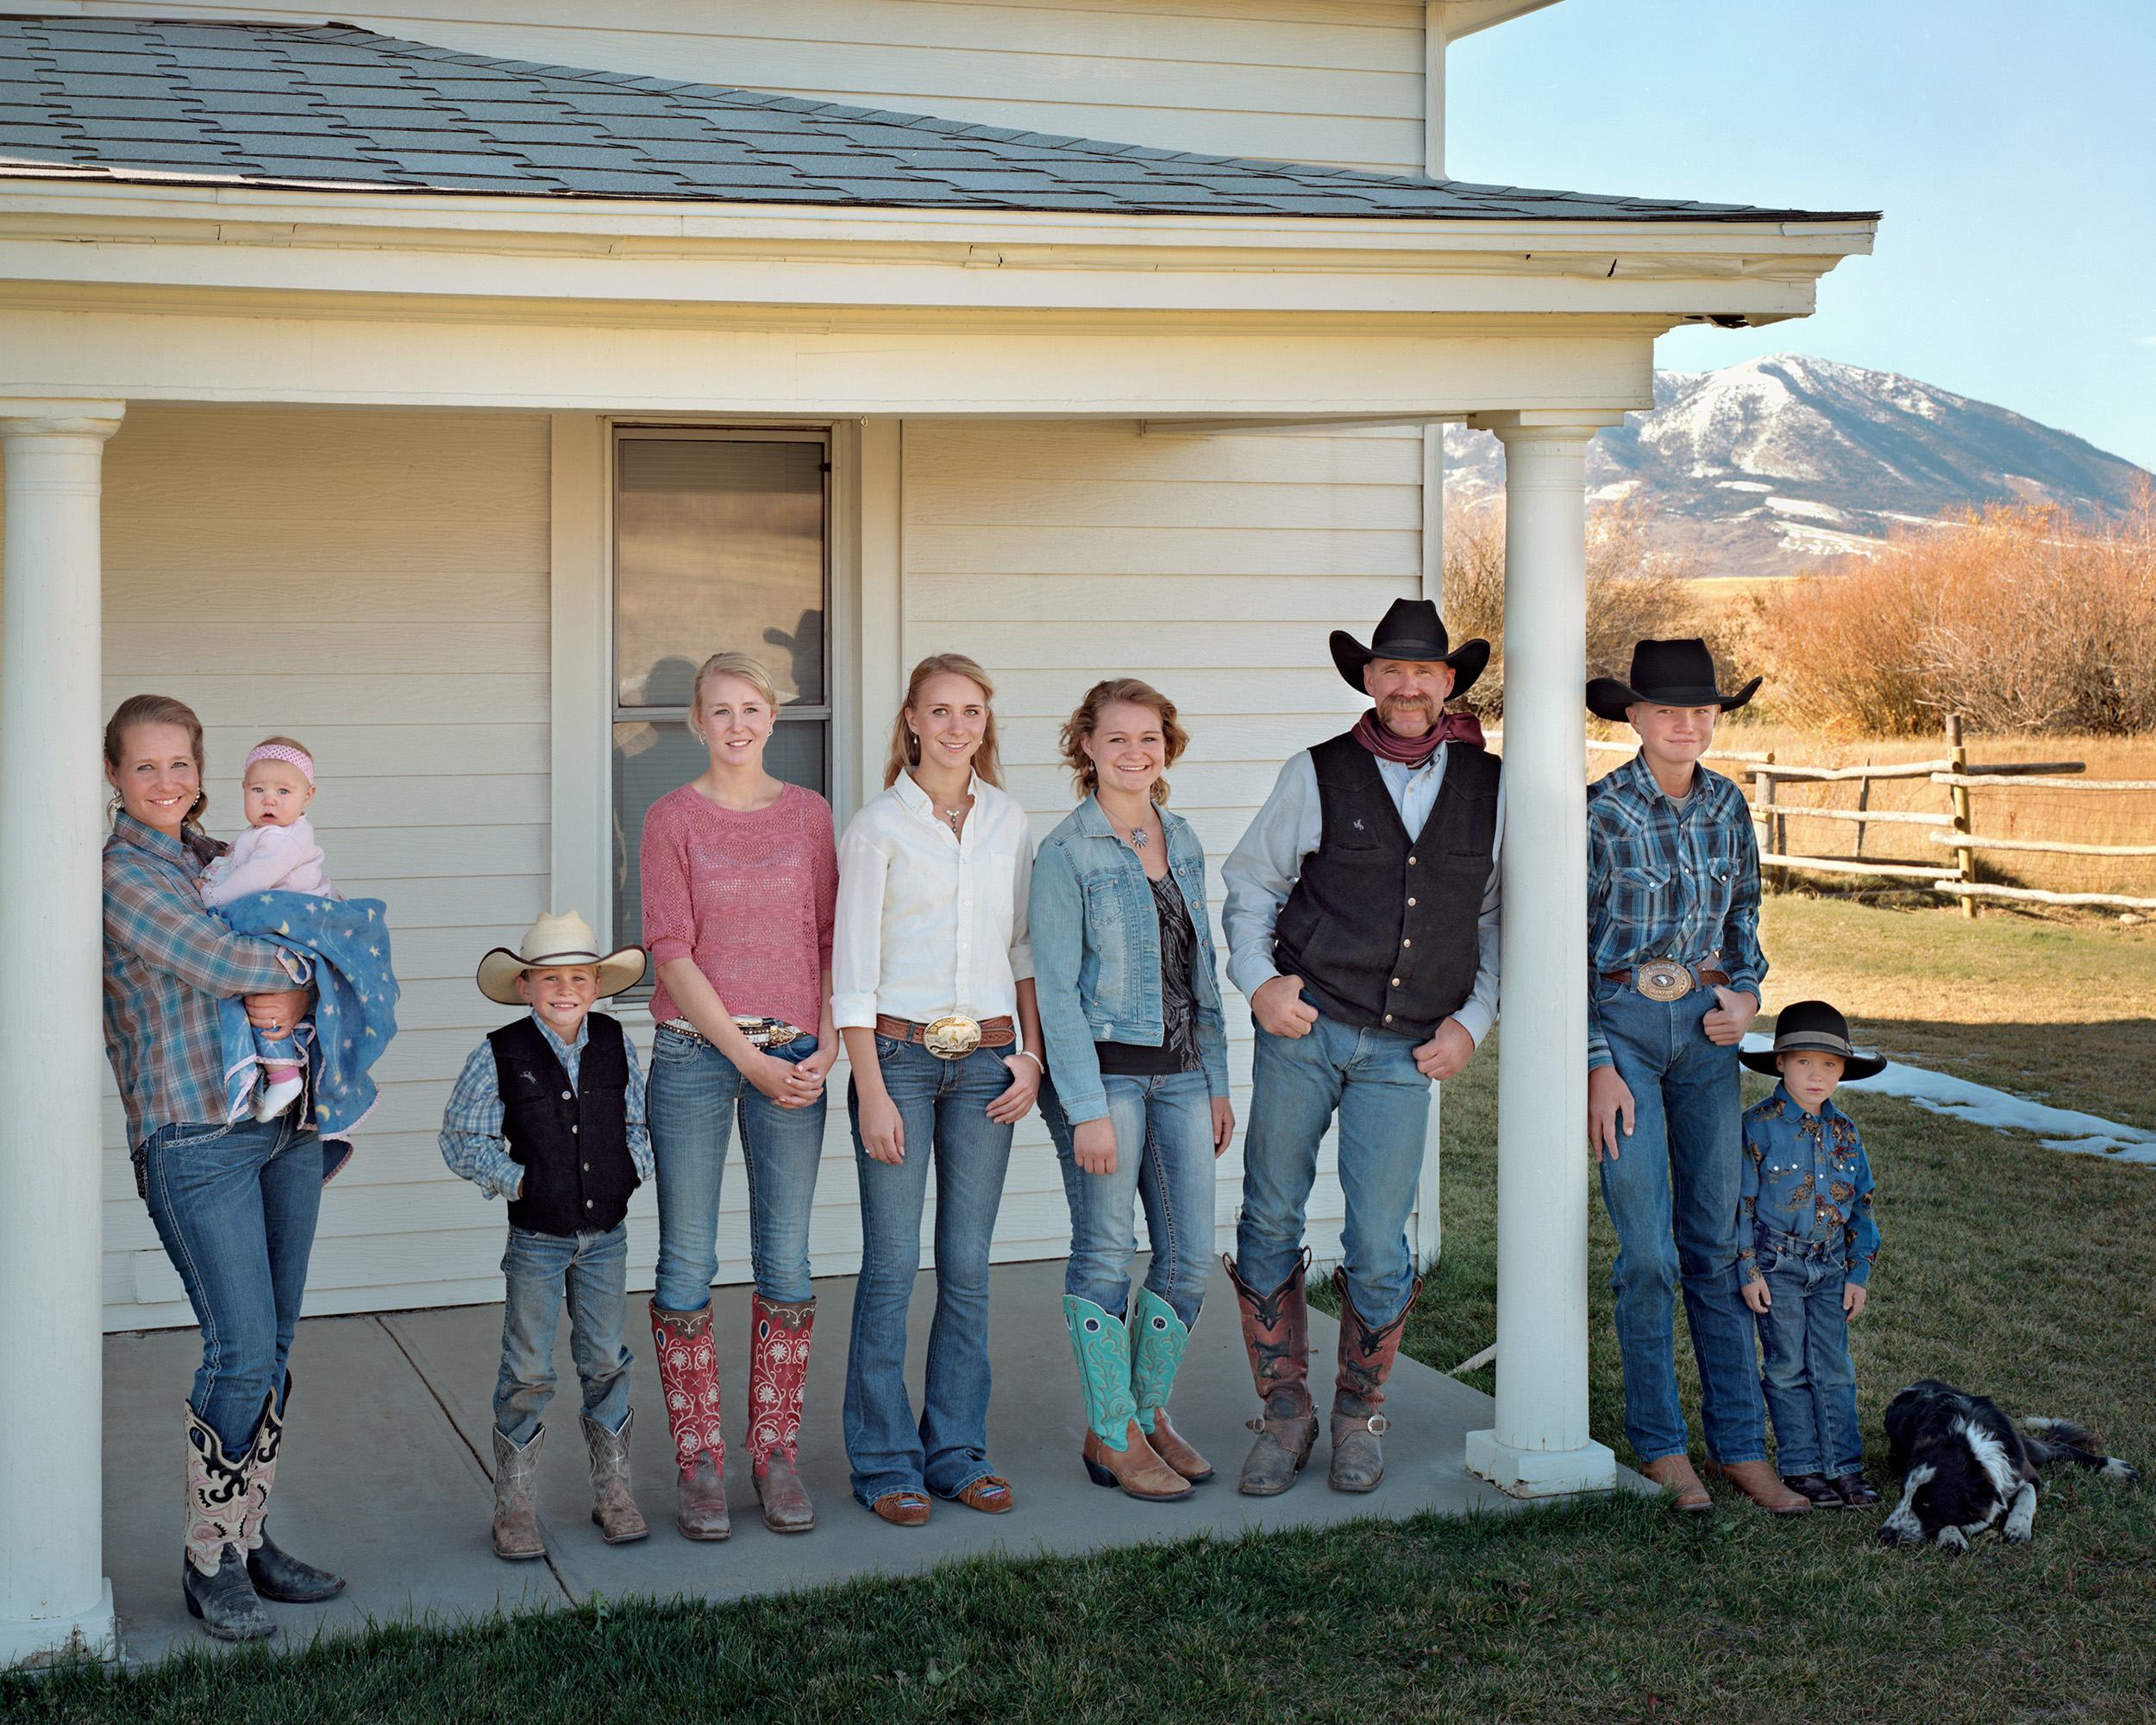 The Cooke Family, Carbon County, Wyoming